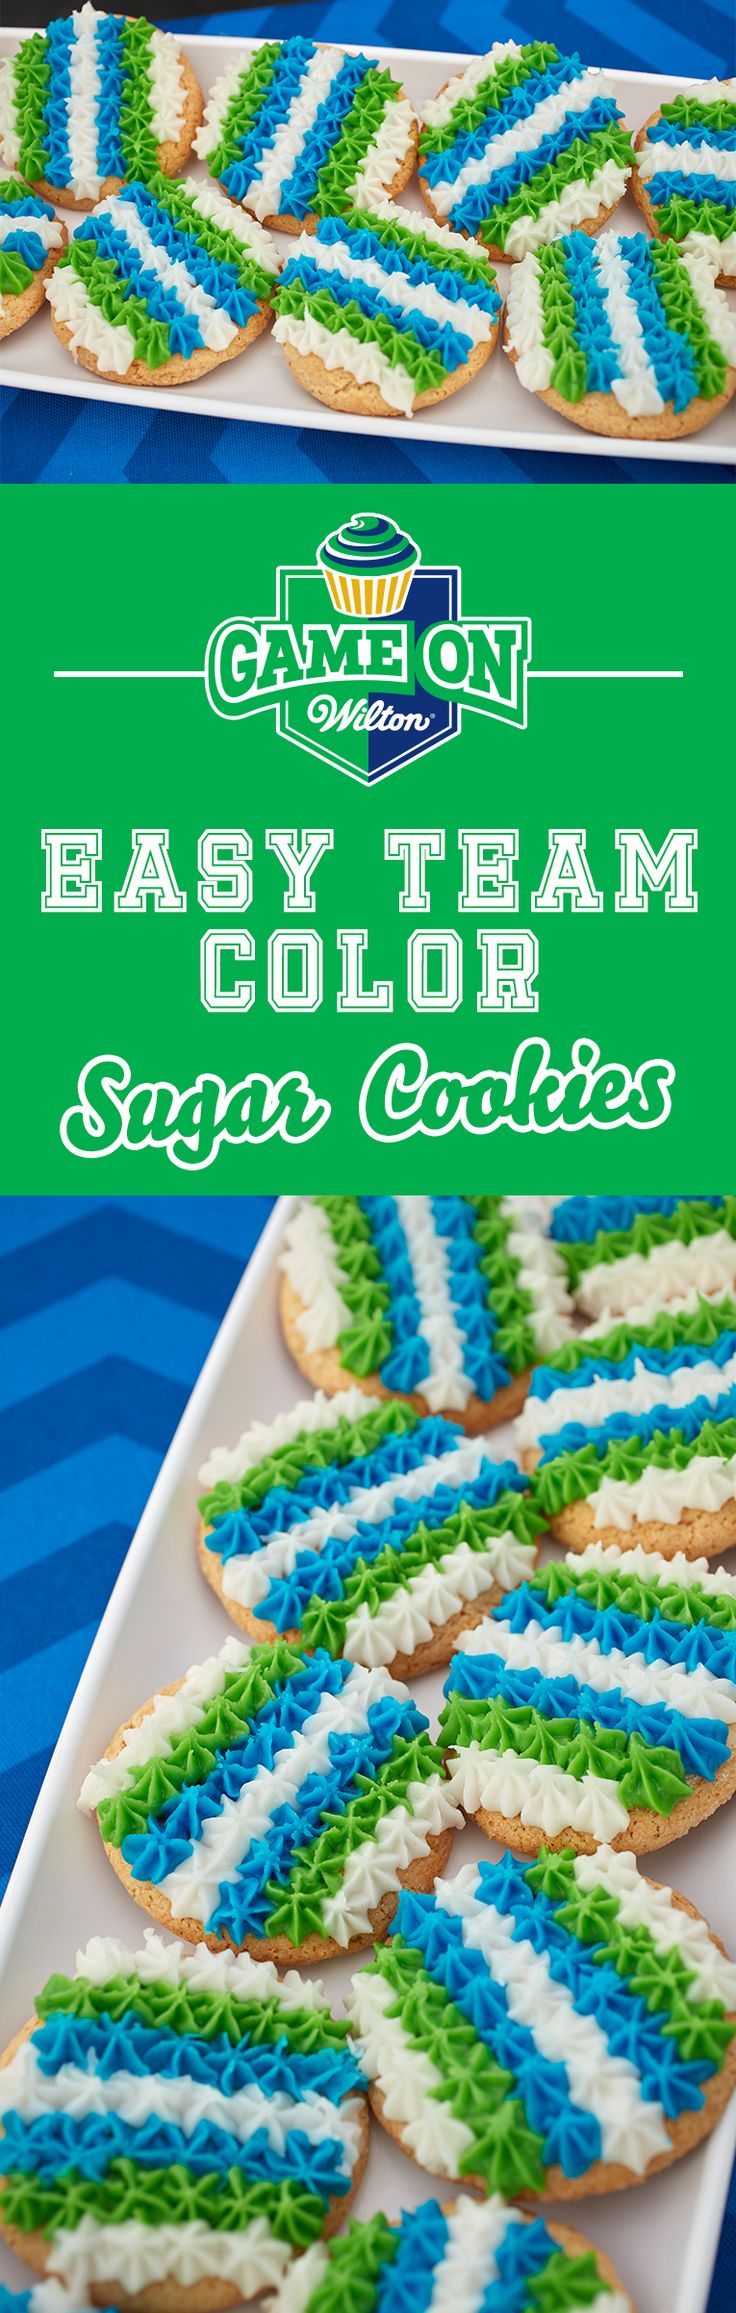 Easy Team Color Sugar Cookies Recipe - Customized color on cookies has never been easier! Learn how to make this colorful and fun cookie recipe using these easy icing pouches to create bright and bold colors to cheer on your favorite professional football, basketball or youth sports team! Great for at-home game time treats or to bring to the tailgate party for the big game.